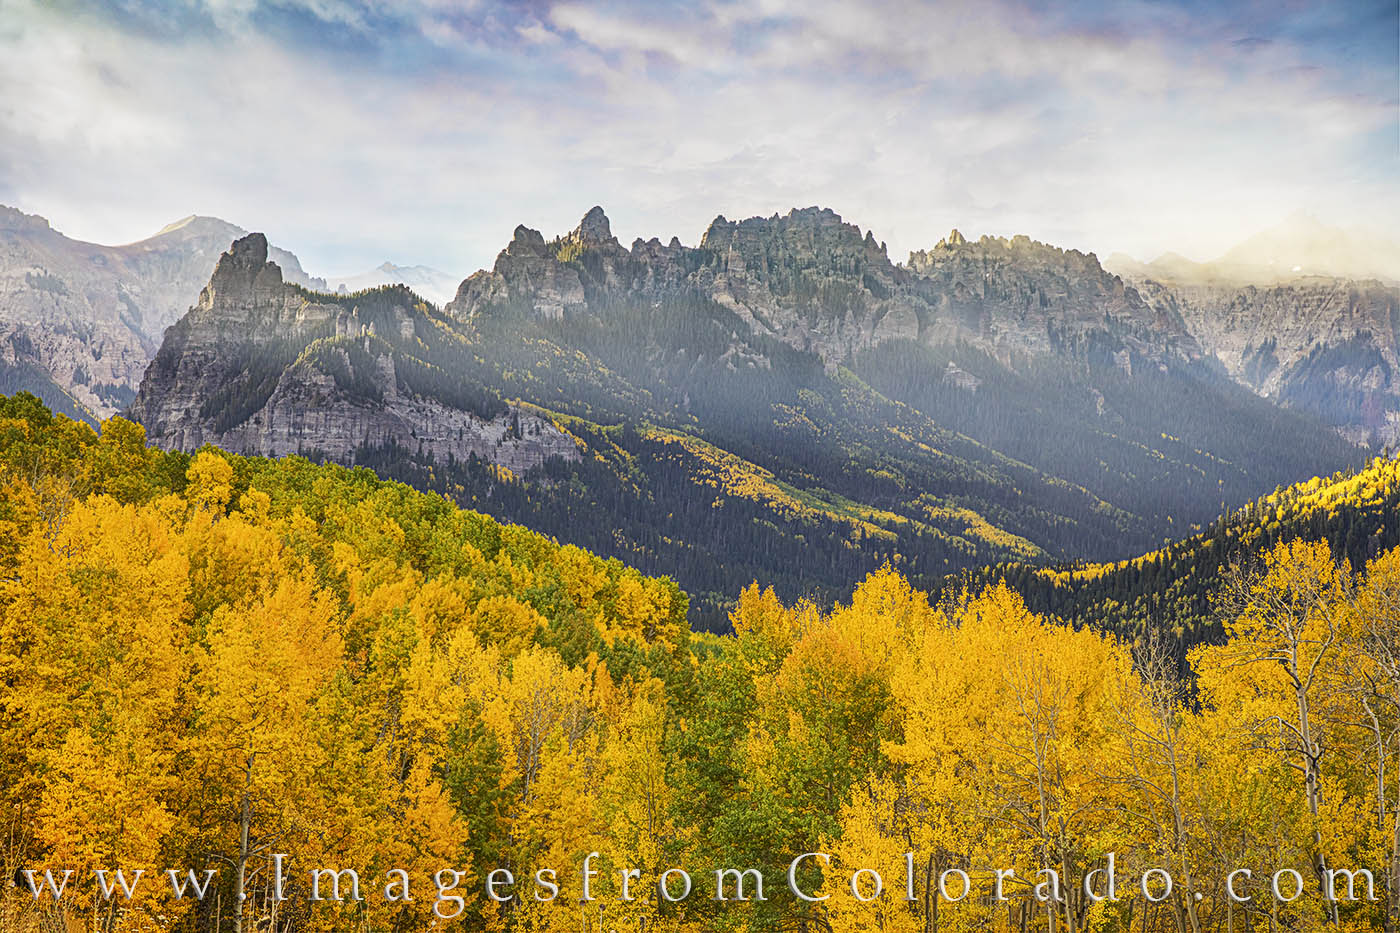 Low clouds swept across the jagged peaks of the Cimarron Range on this cold fall morning. The aspen were full of gold with patches...